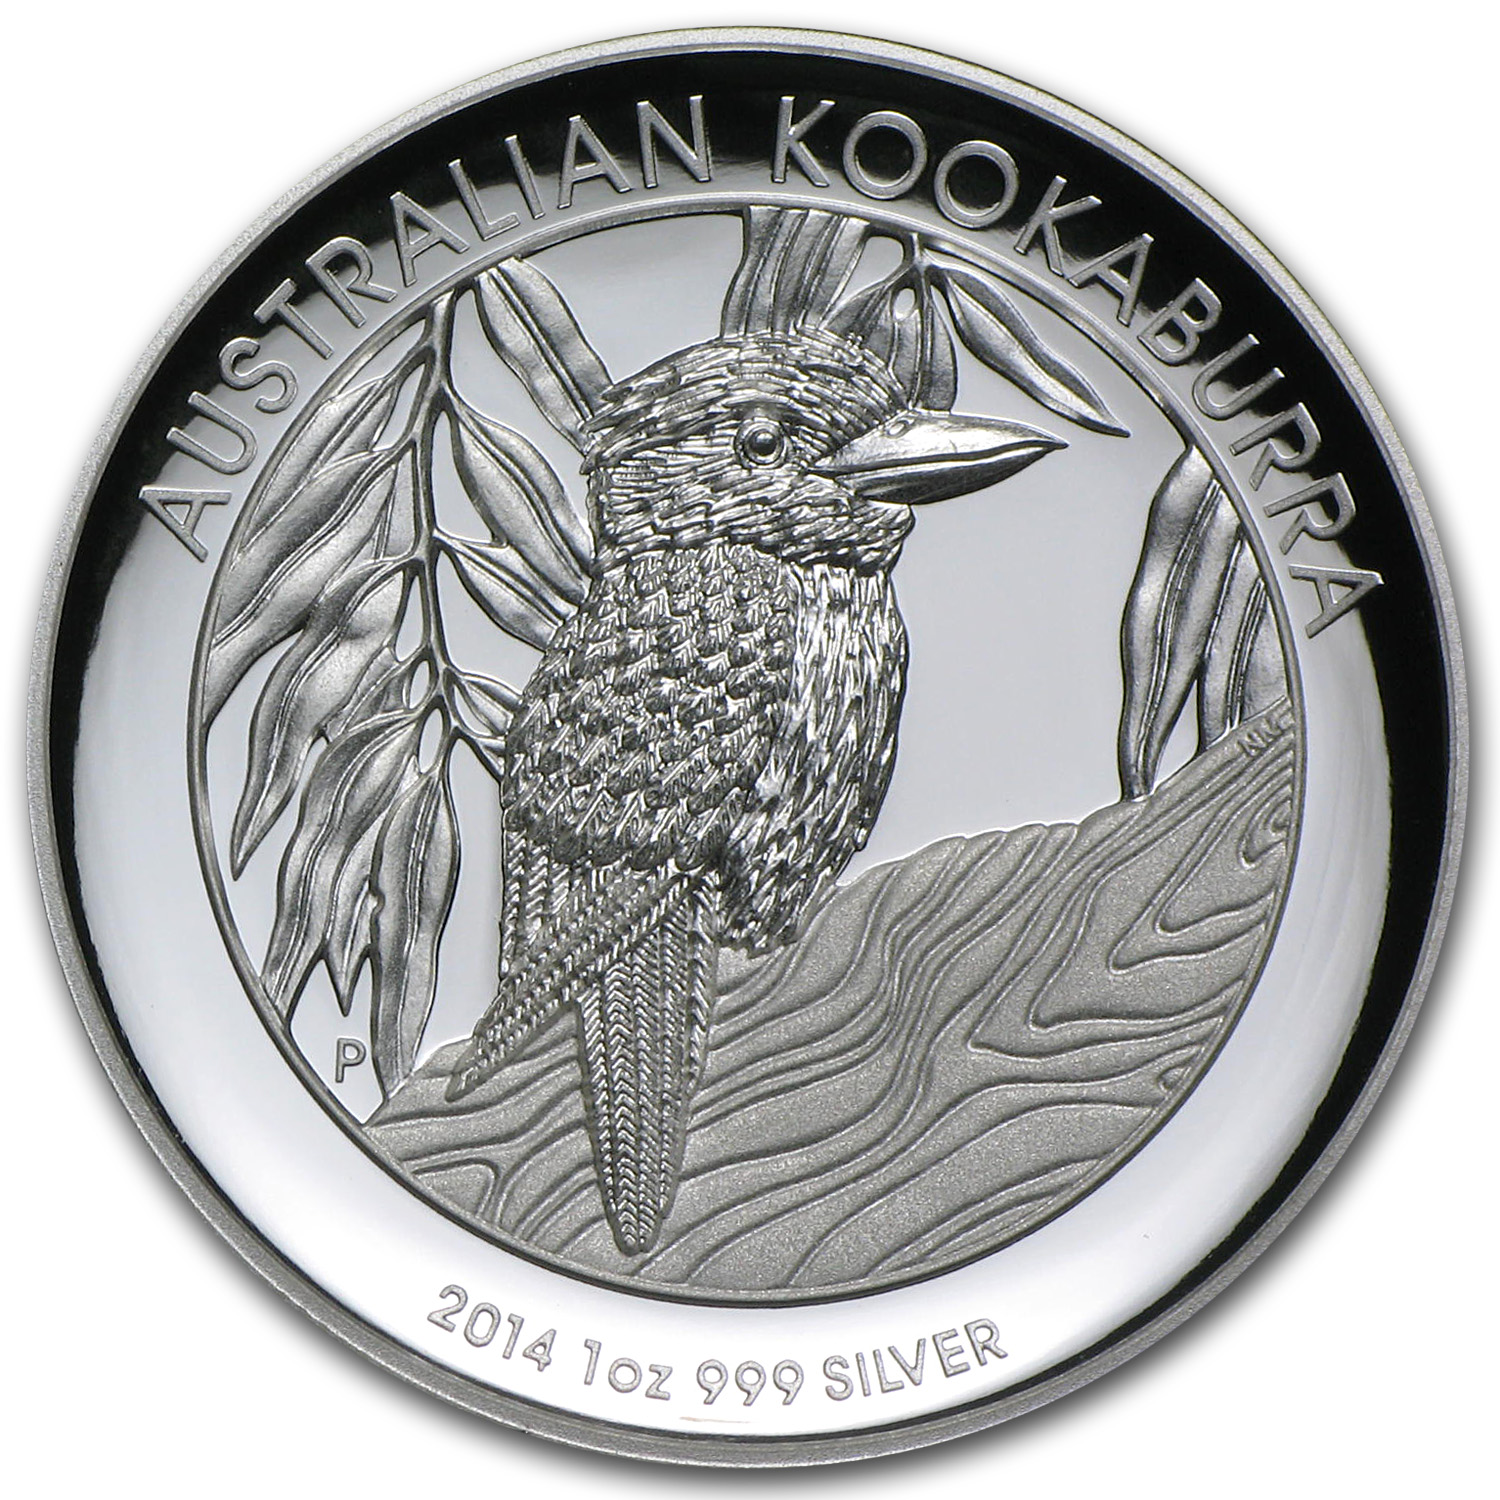 2014 1 oz Silver Australian Kookaburra Proof (High Relief)